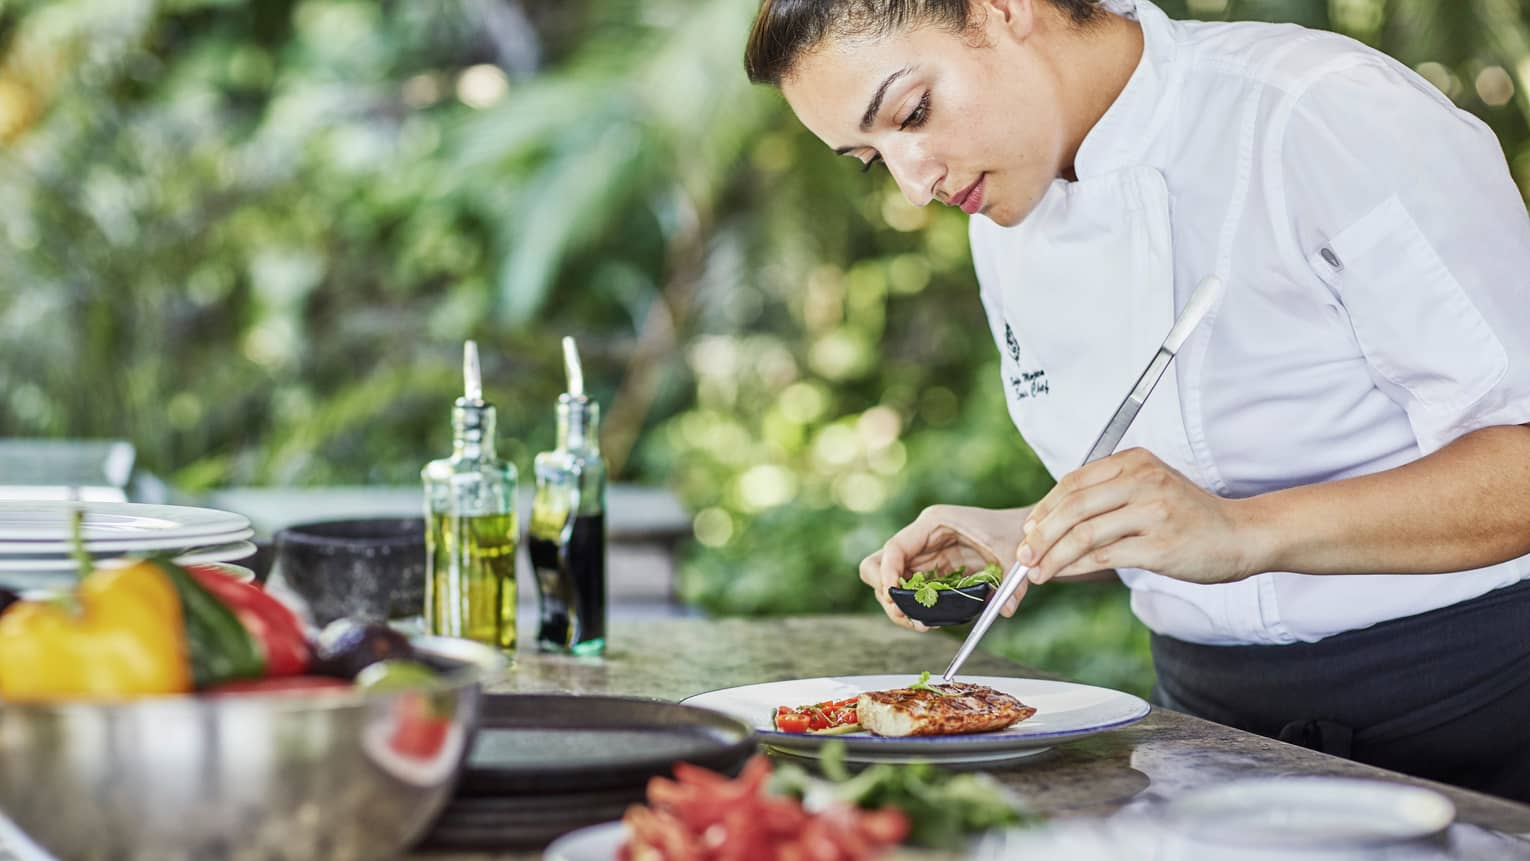 Chef with large tweezers garnishes entree with fresh herbs at outdoor kitchen counter